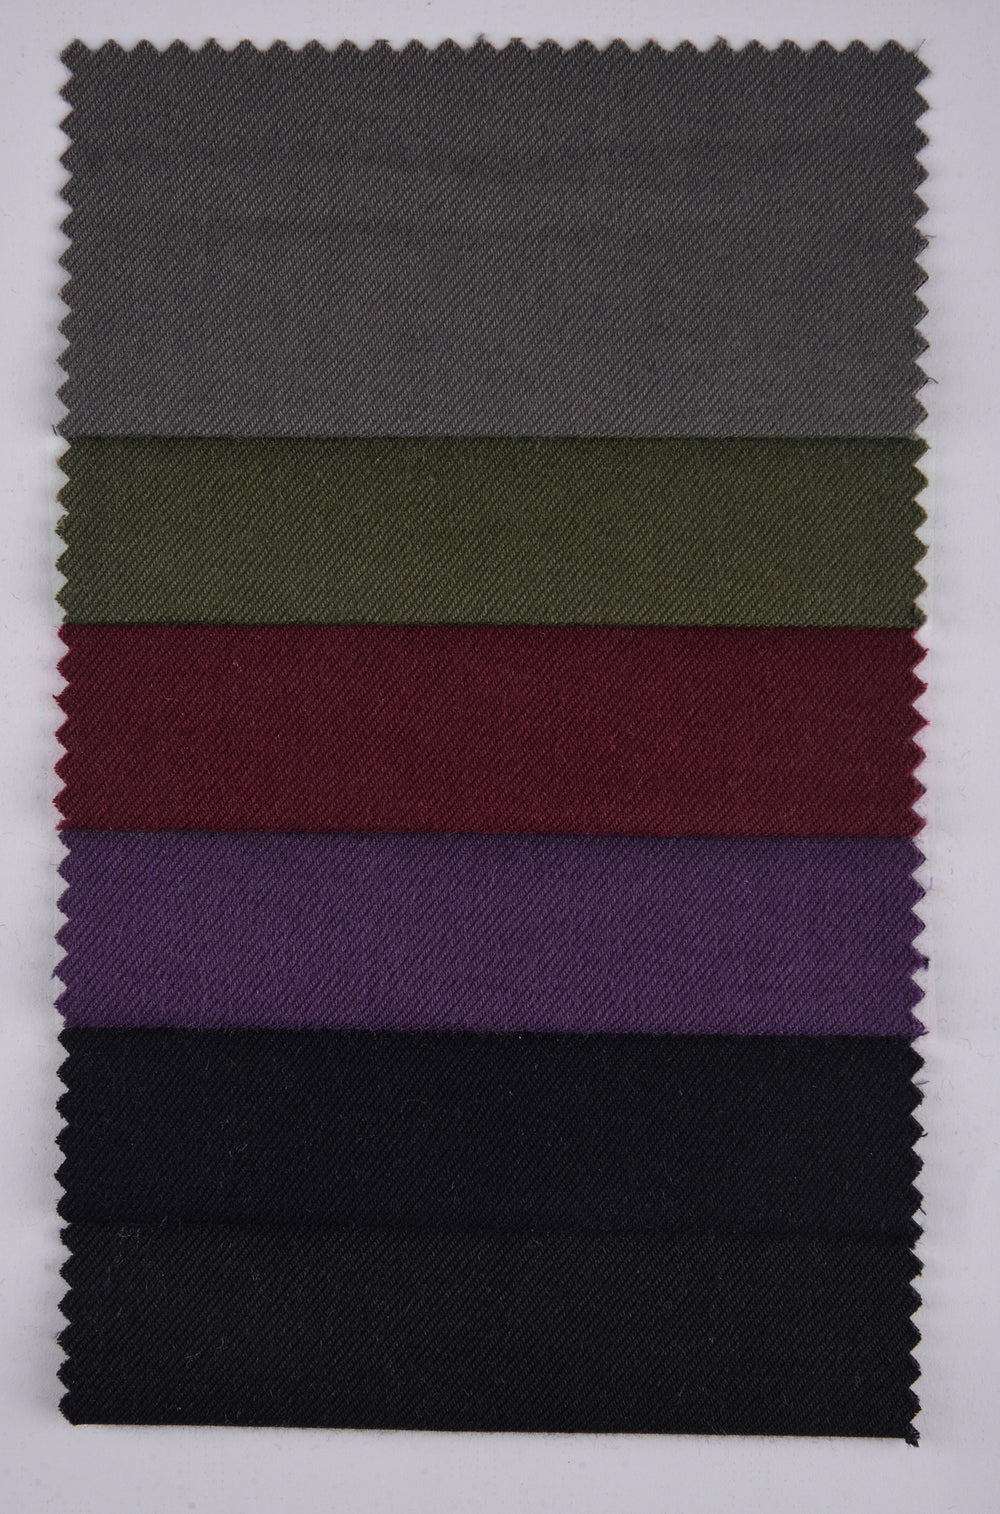 Cashmerello Alumo: Dark Purple Cotton Twill